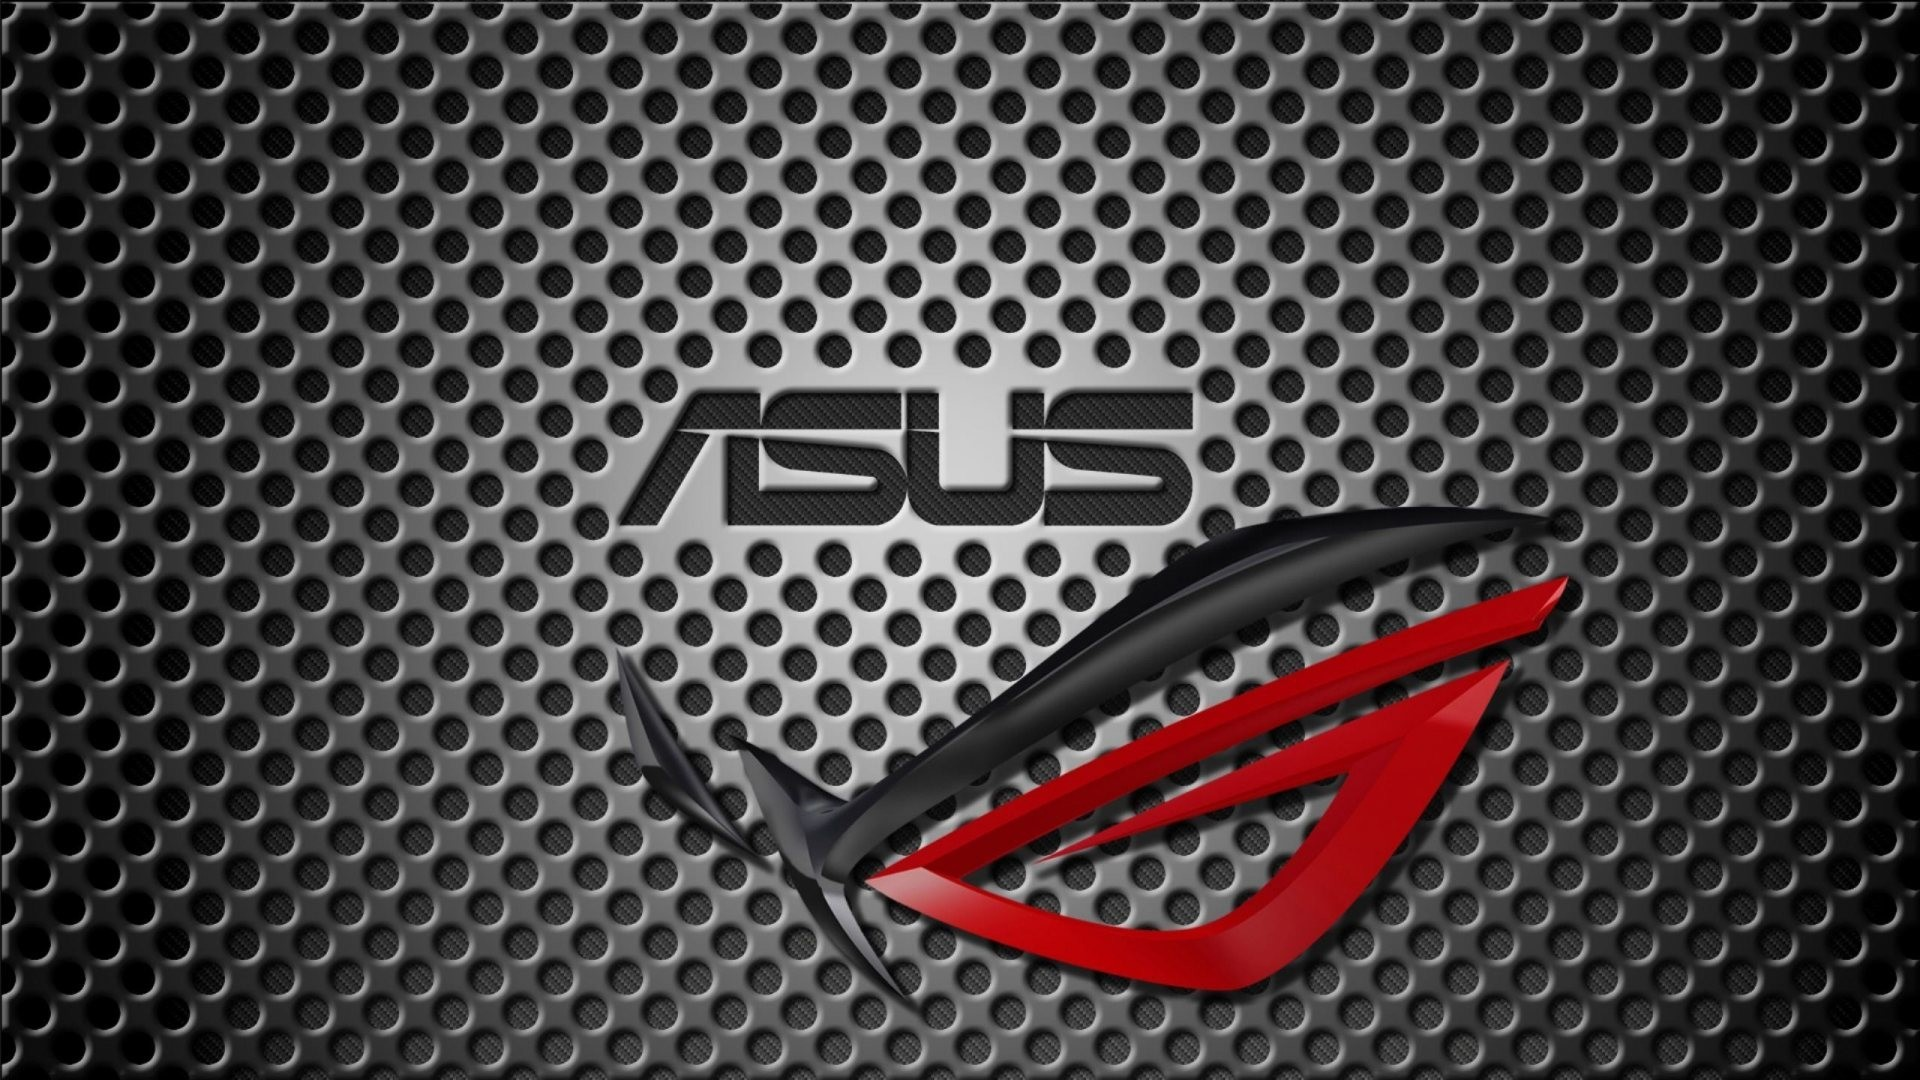 Asus wallpaper 1080p 79 images - Asus x series wallpaper hd ...